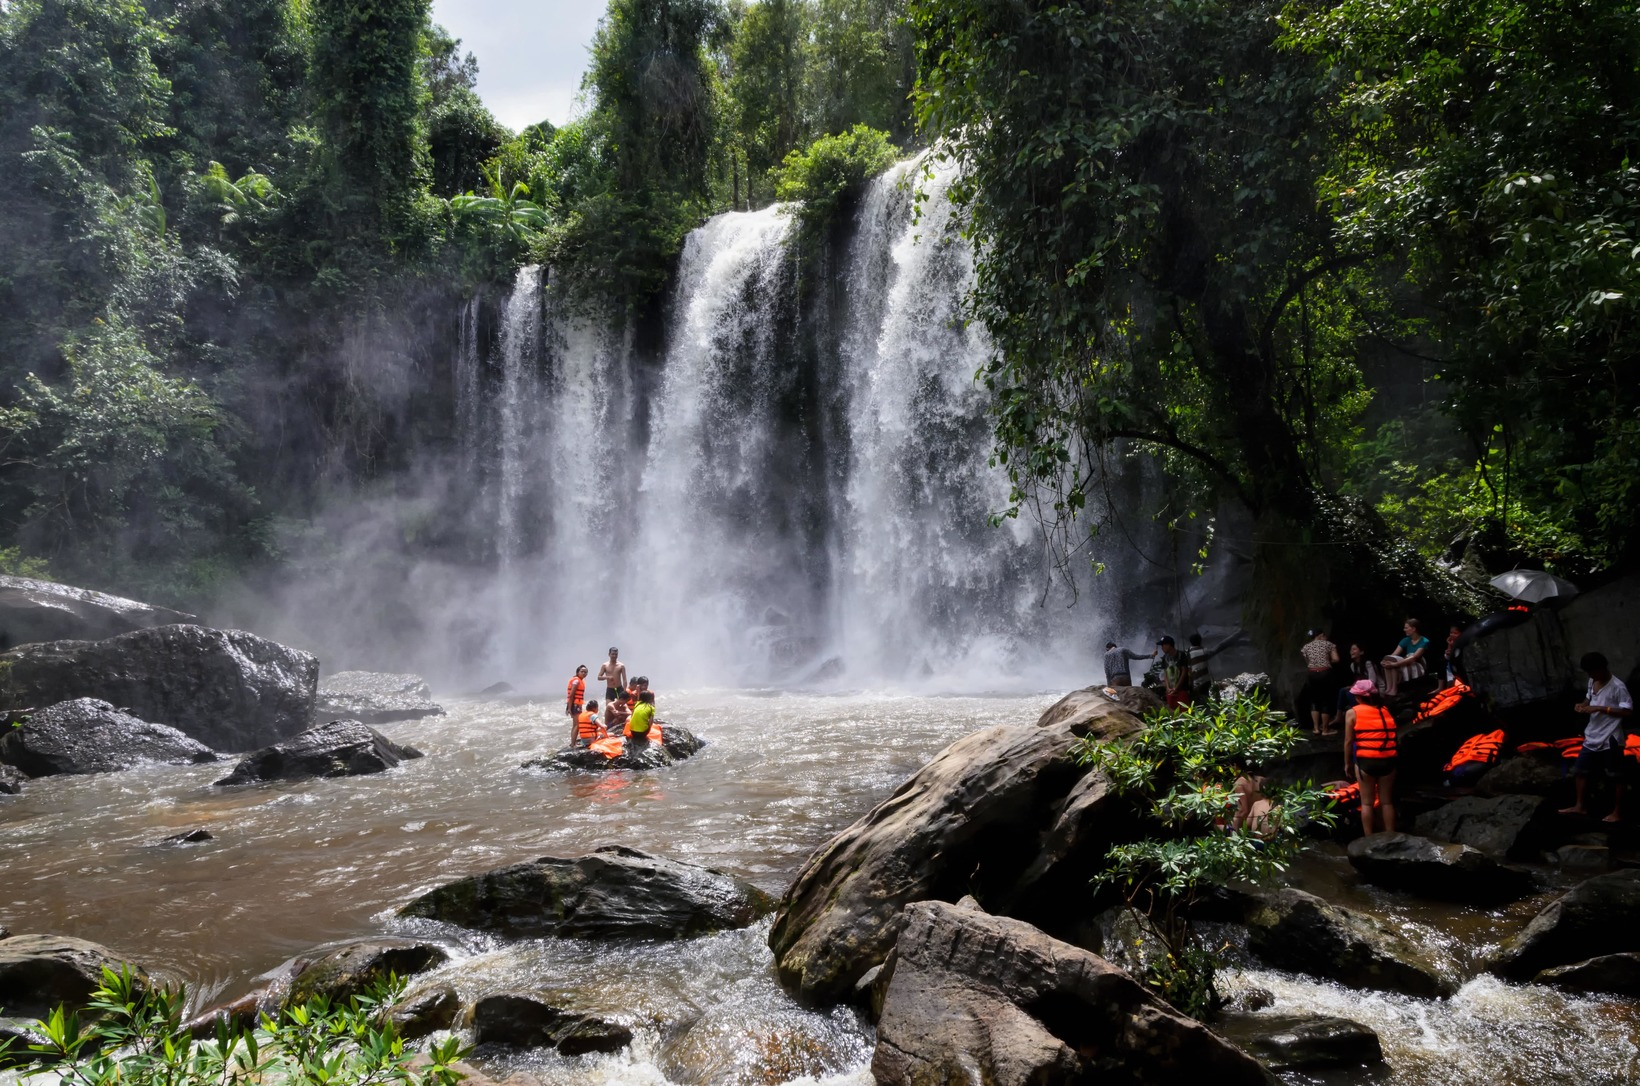 Phnom Kulen National Park - Siem Reap